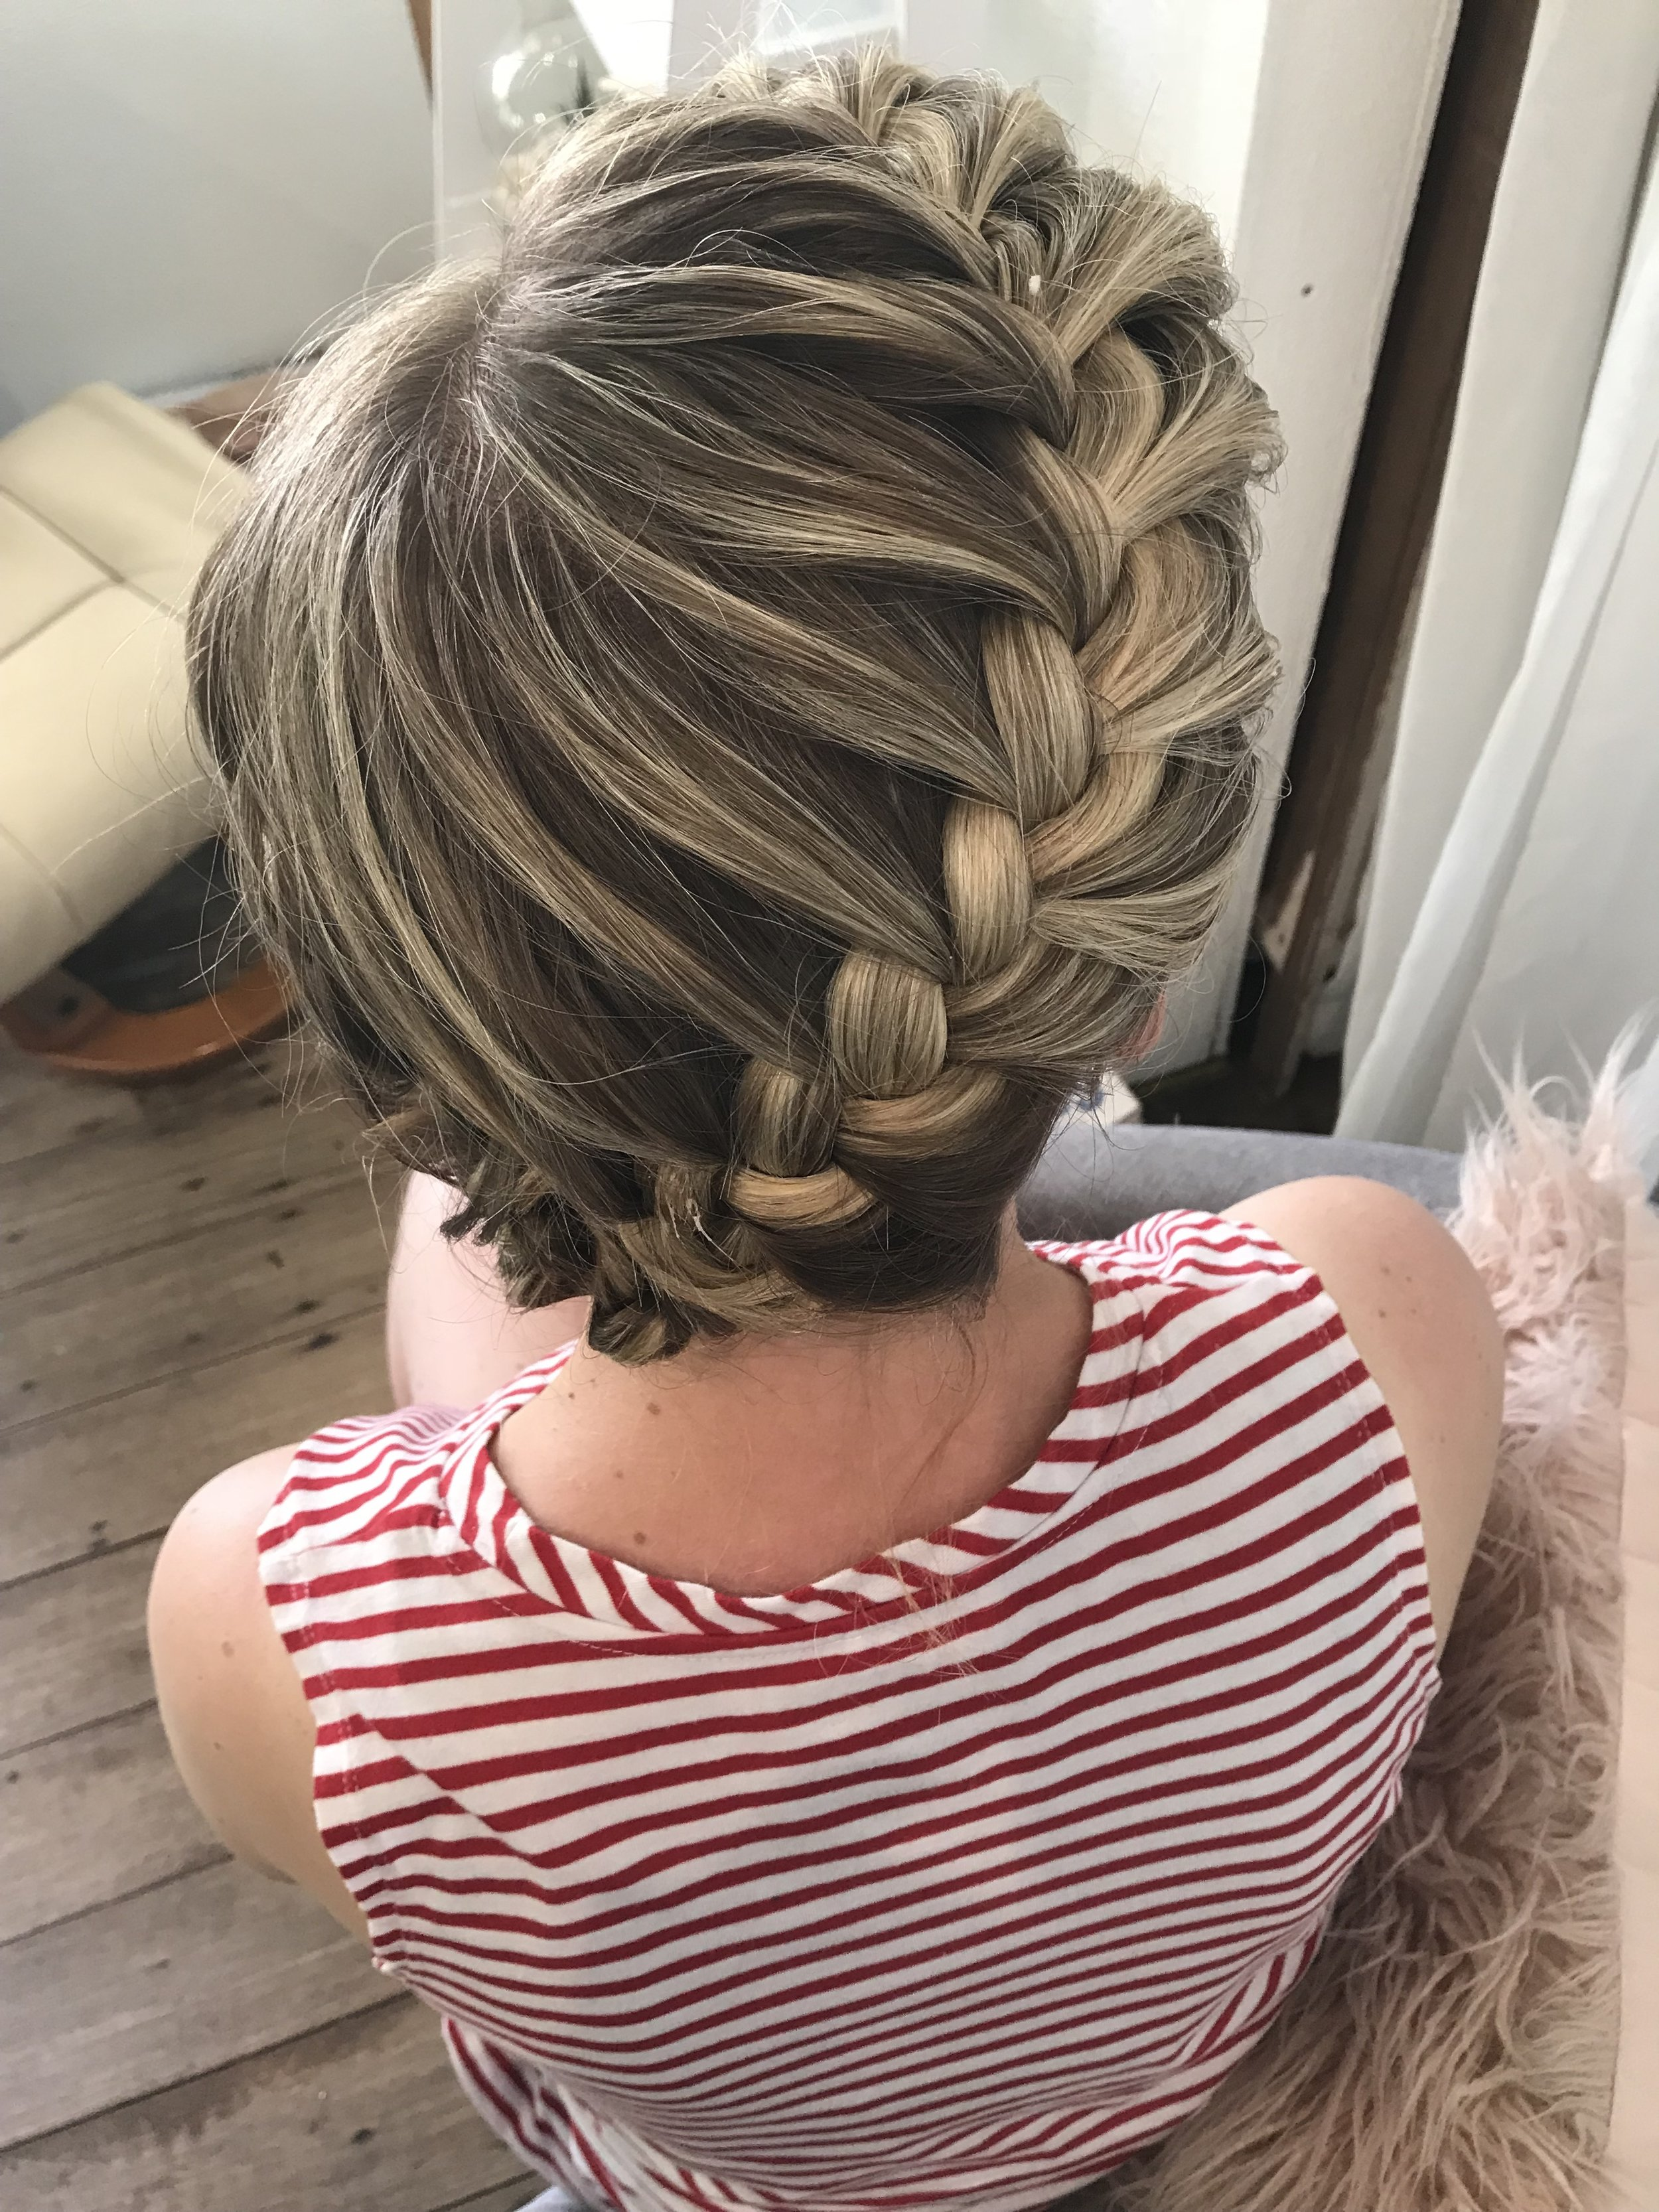 Hair Braiding Salon Australia Kellie Turner 24.jpg